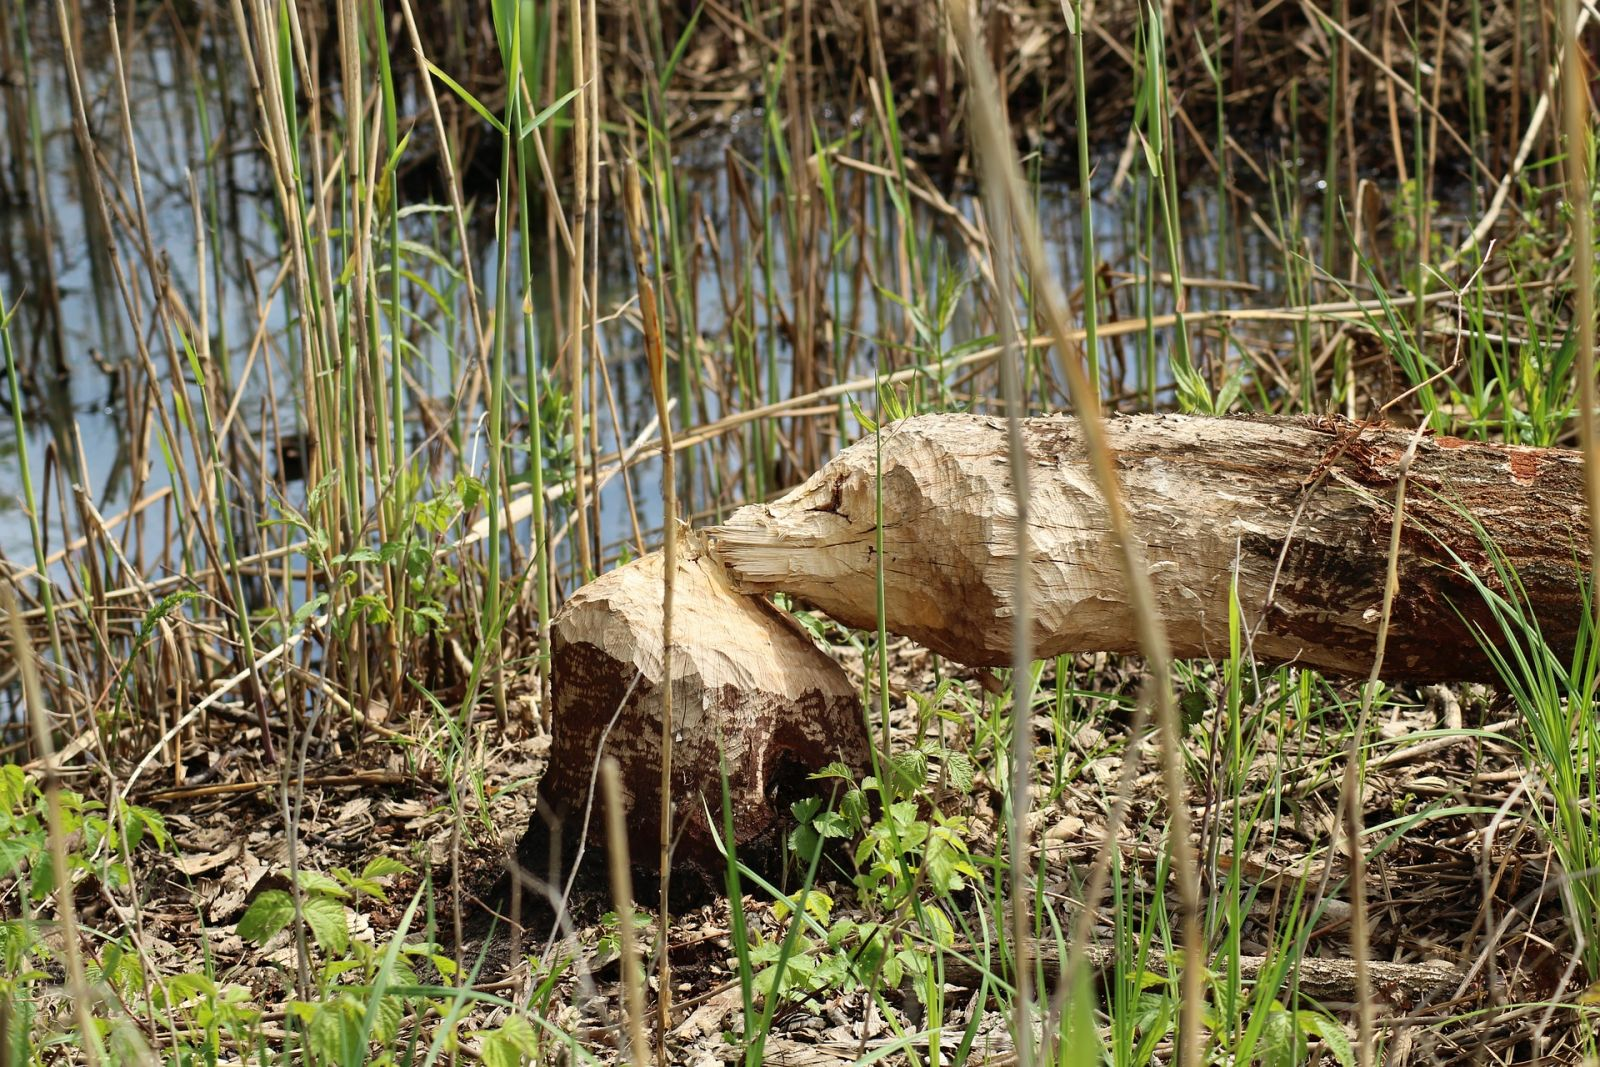 Could beavers deliver changes to the environment and inspire conservationists?